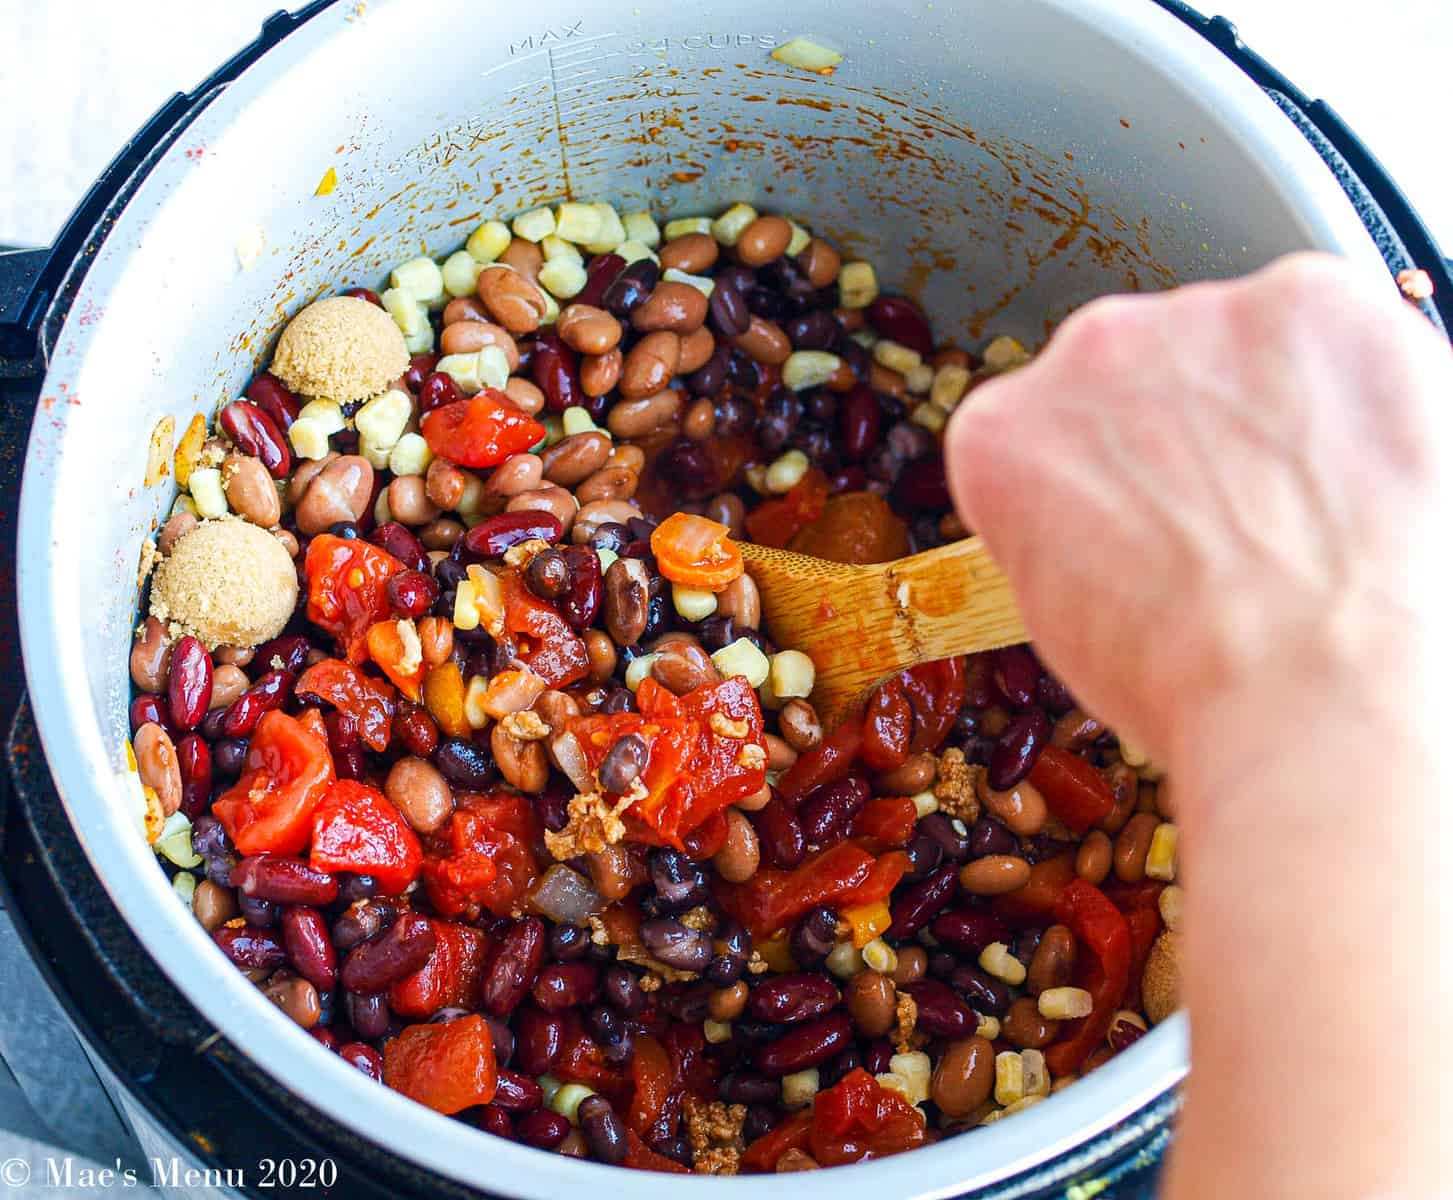 Stirring all of the chili ingredients until combined